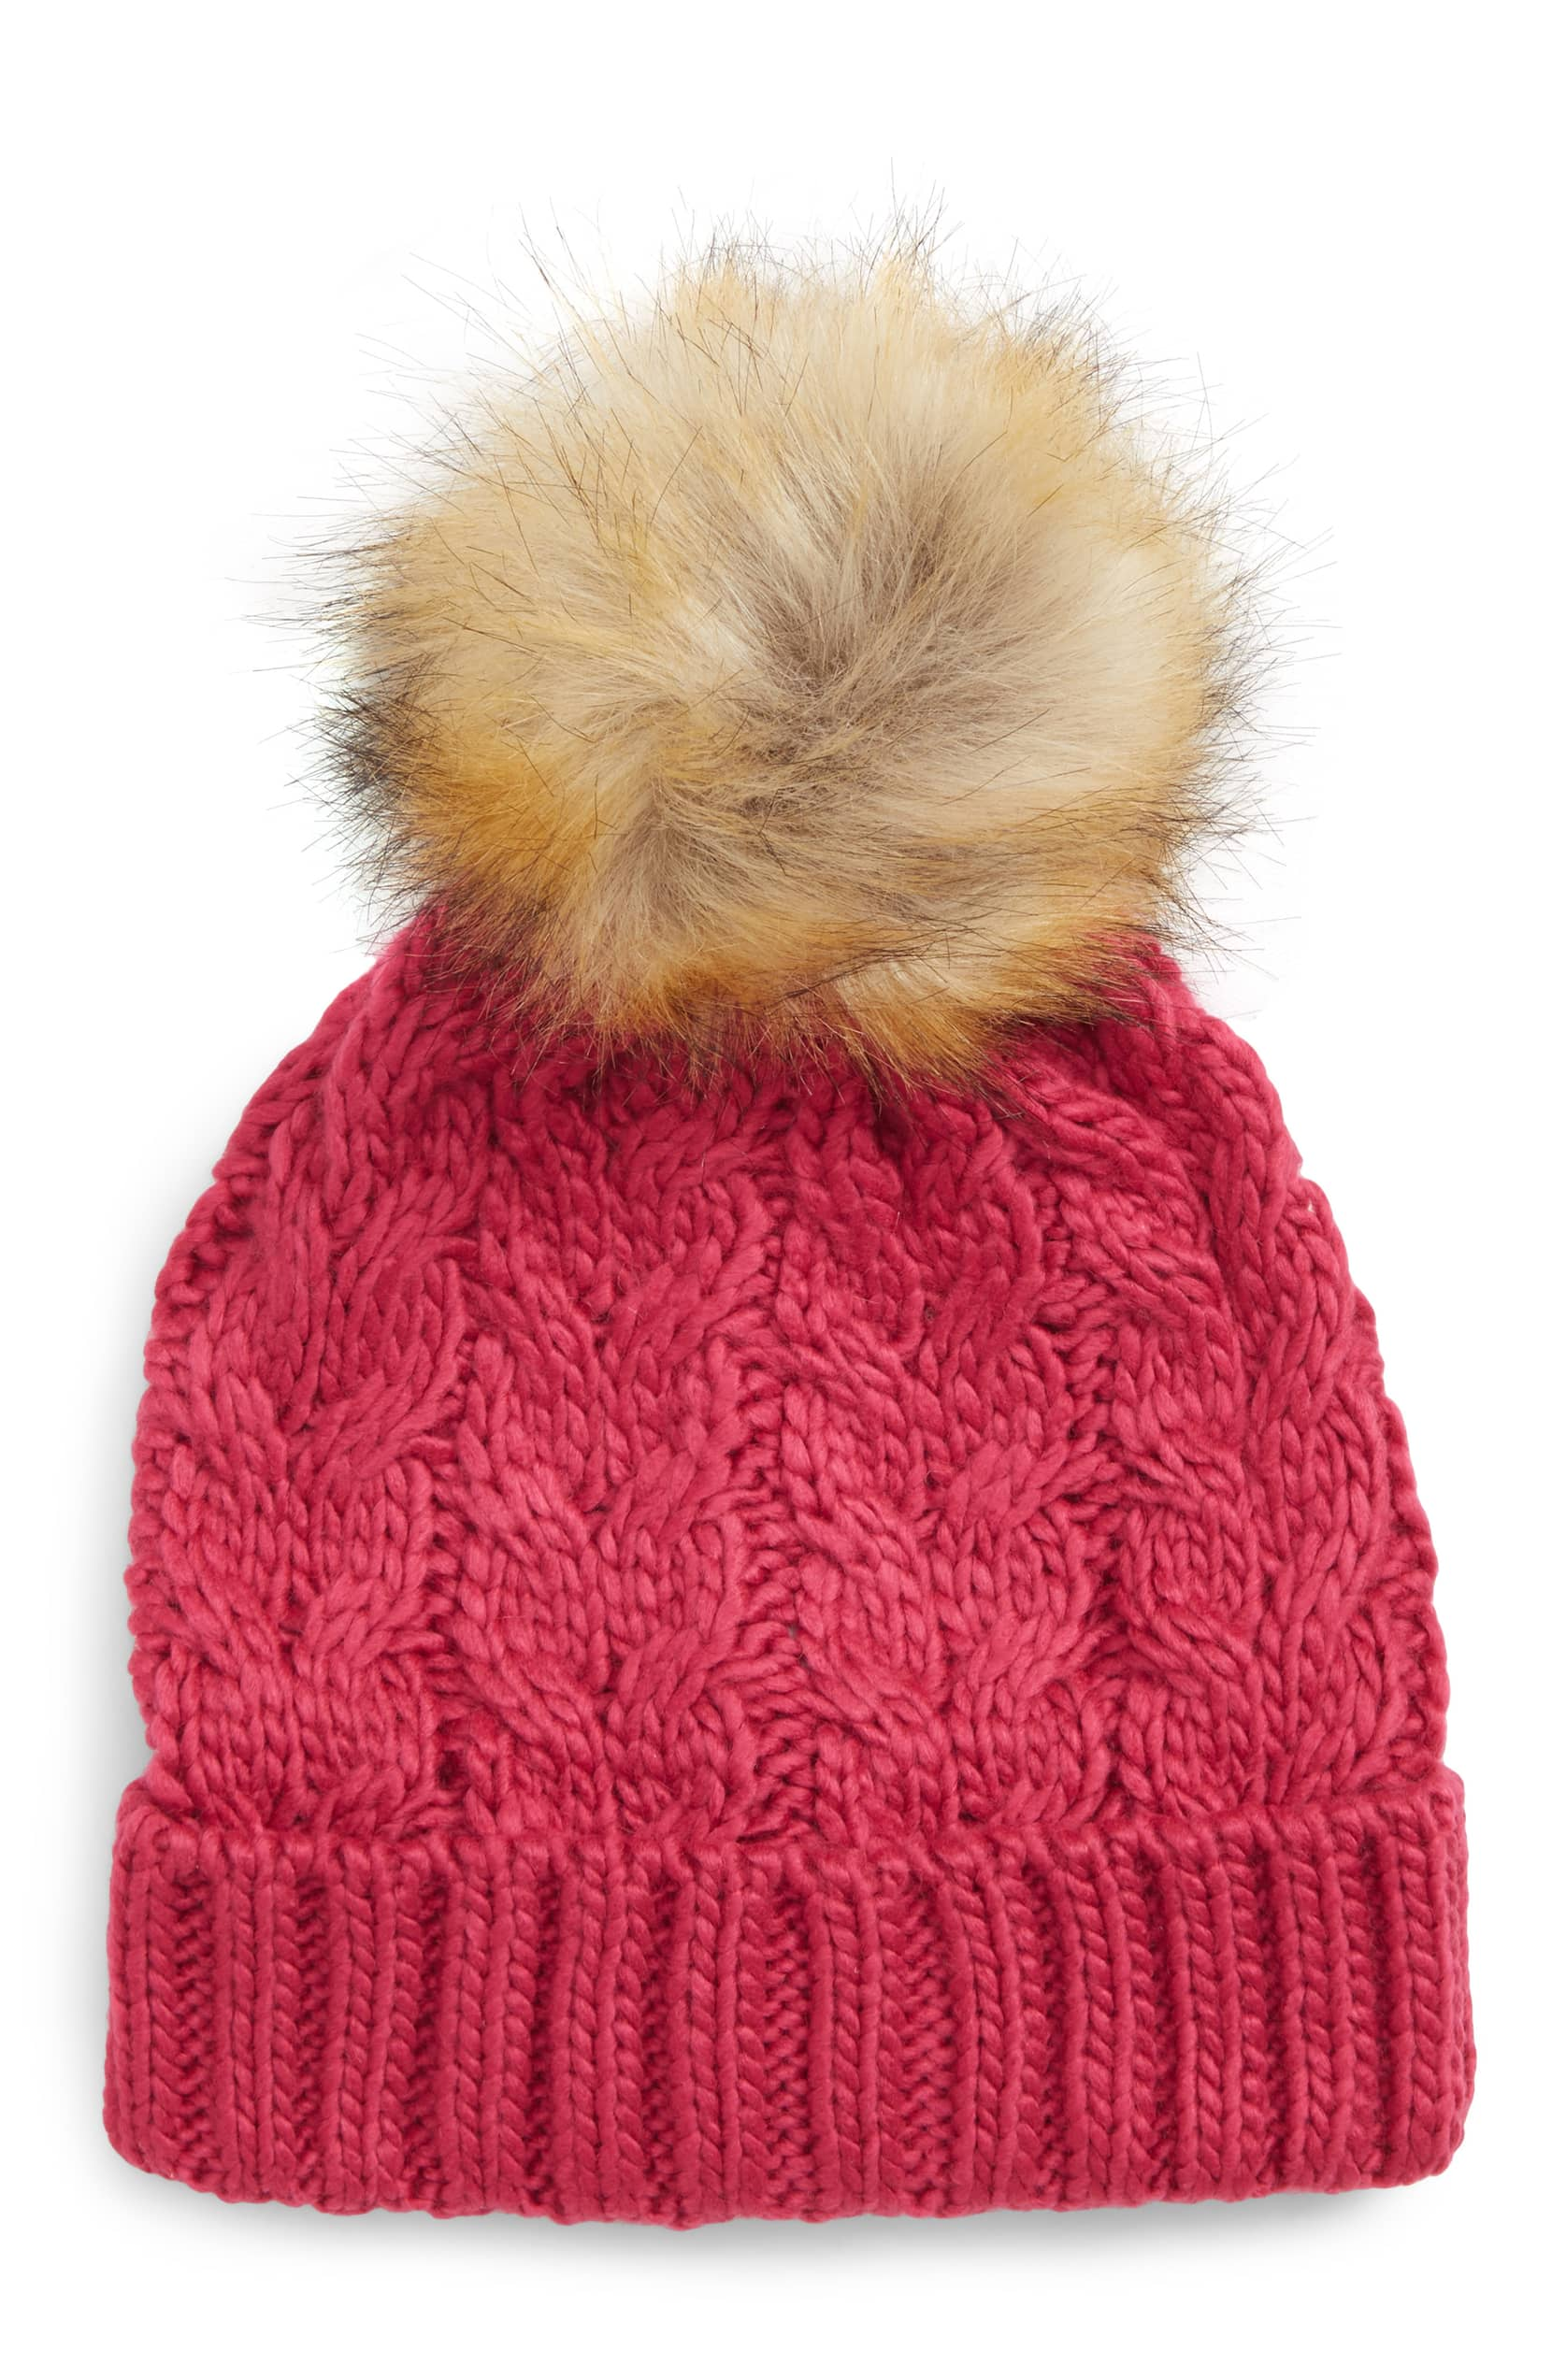 Nordstrom  BP Knit Beanie with Faux Fur Pompom – only  7 (reg  19) Shipped! 12e64ea1b63